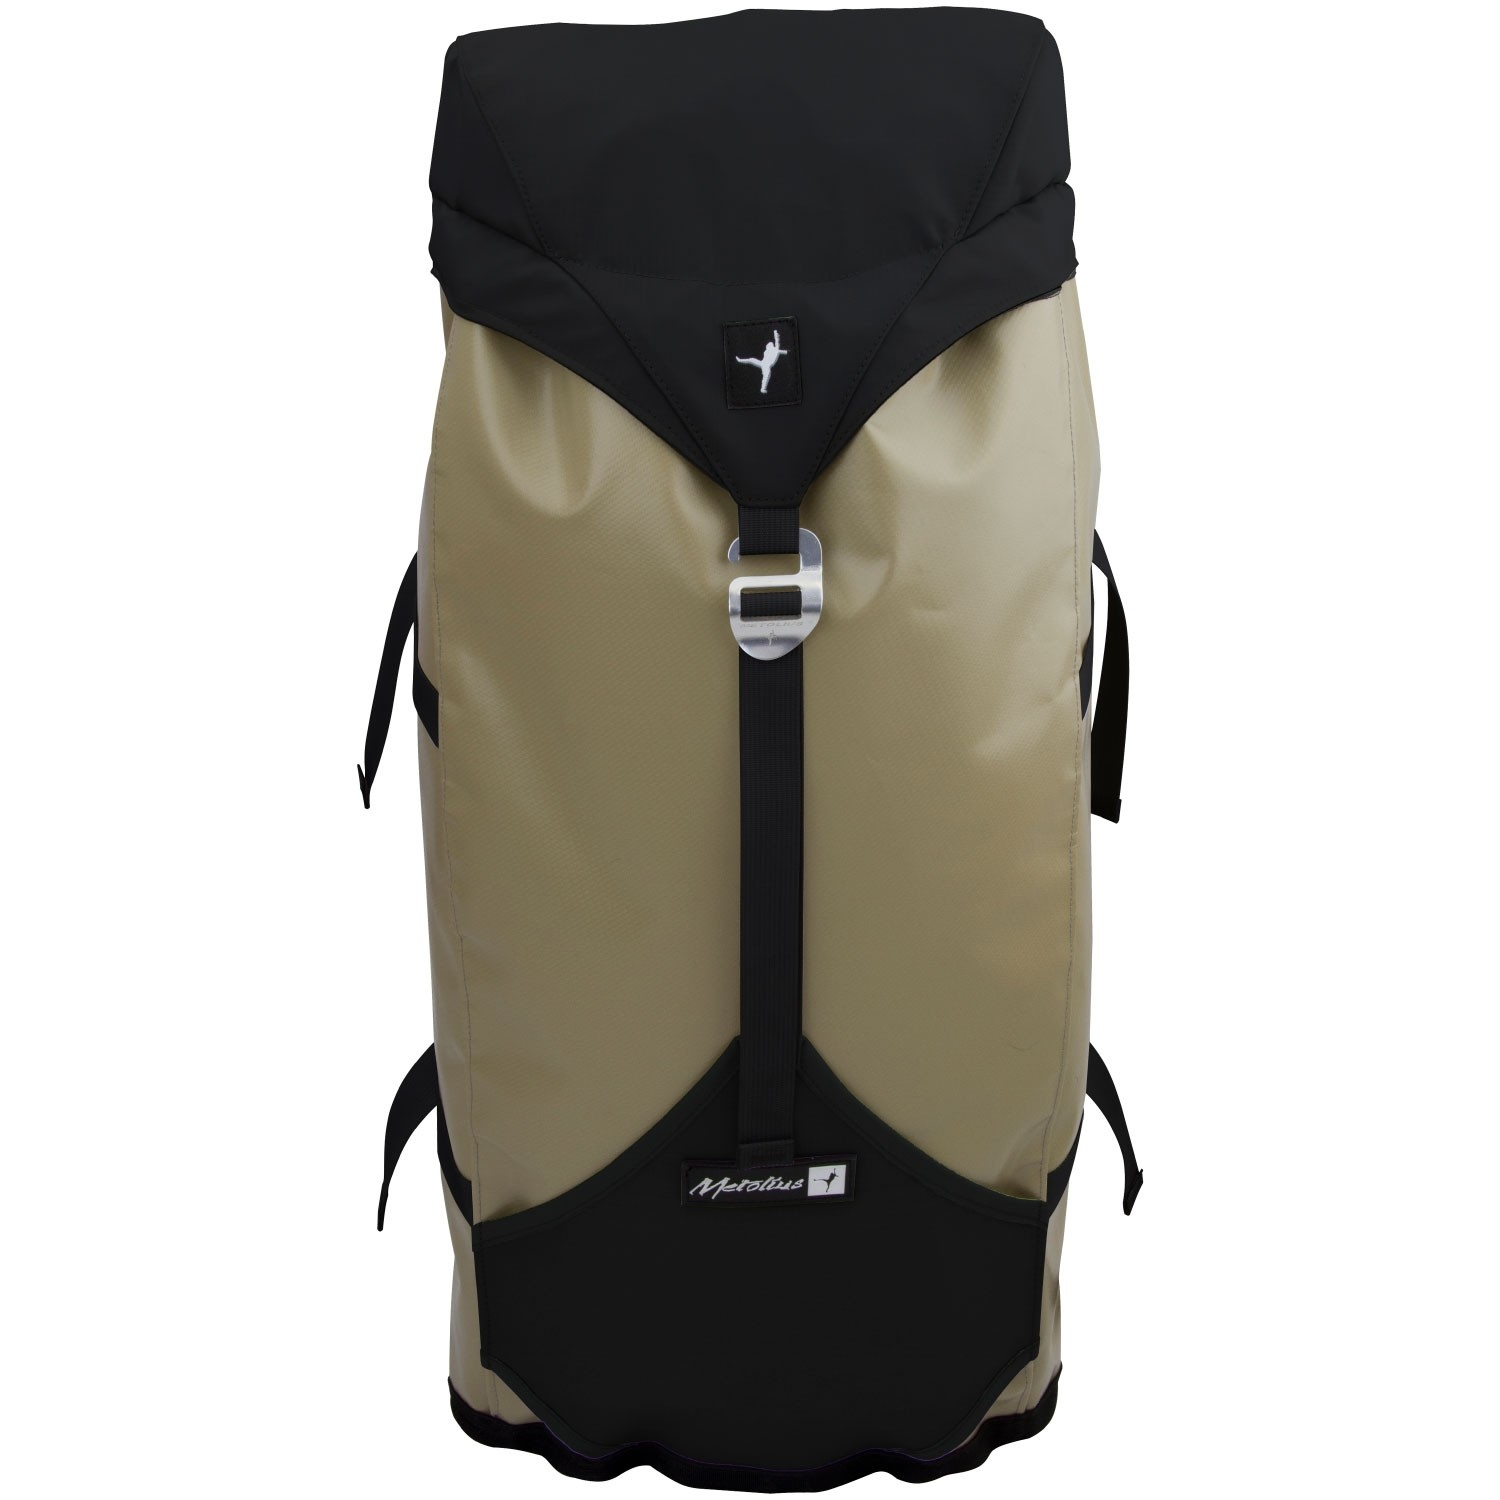 Freerider Pack - 41L - Tan